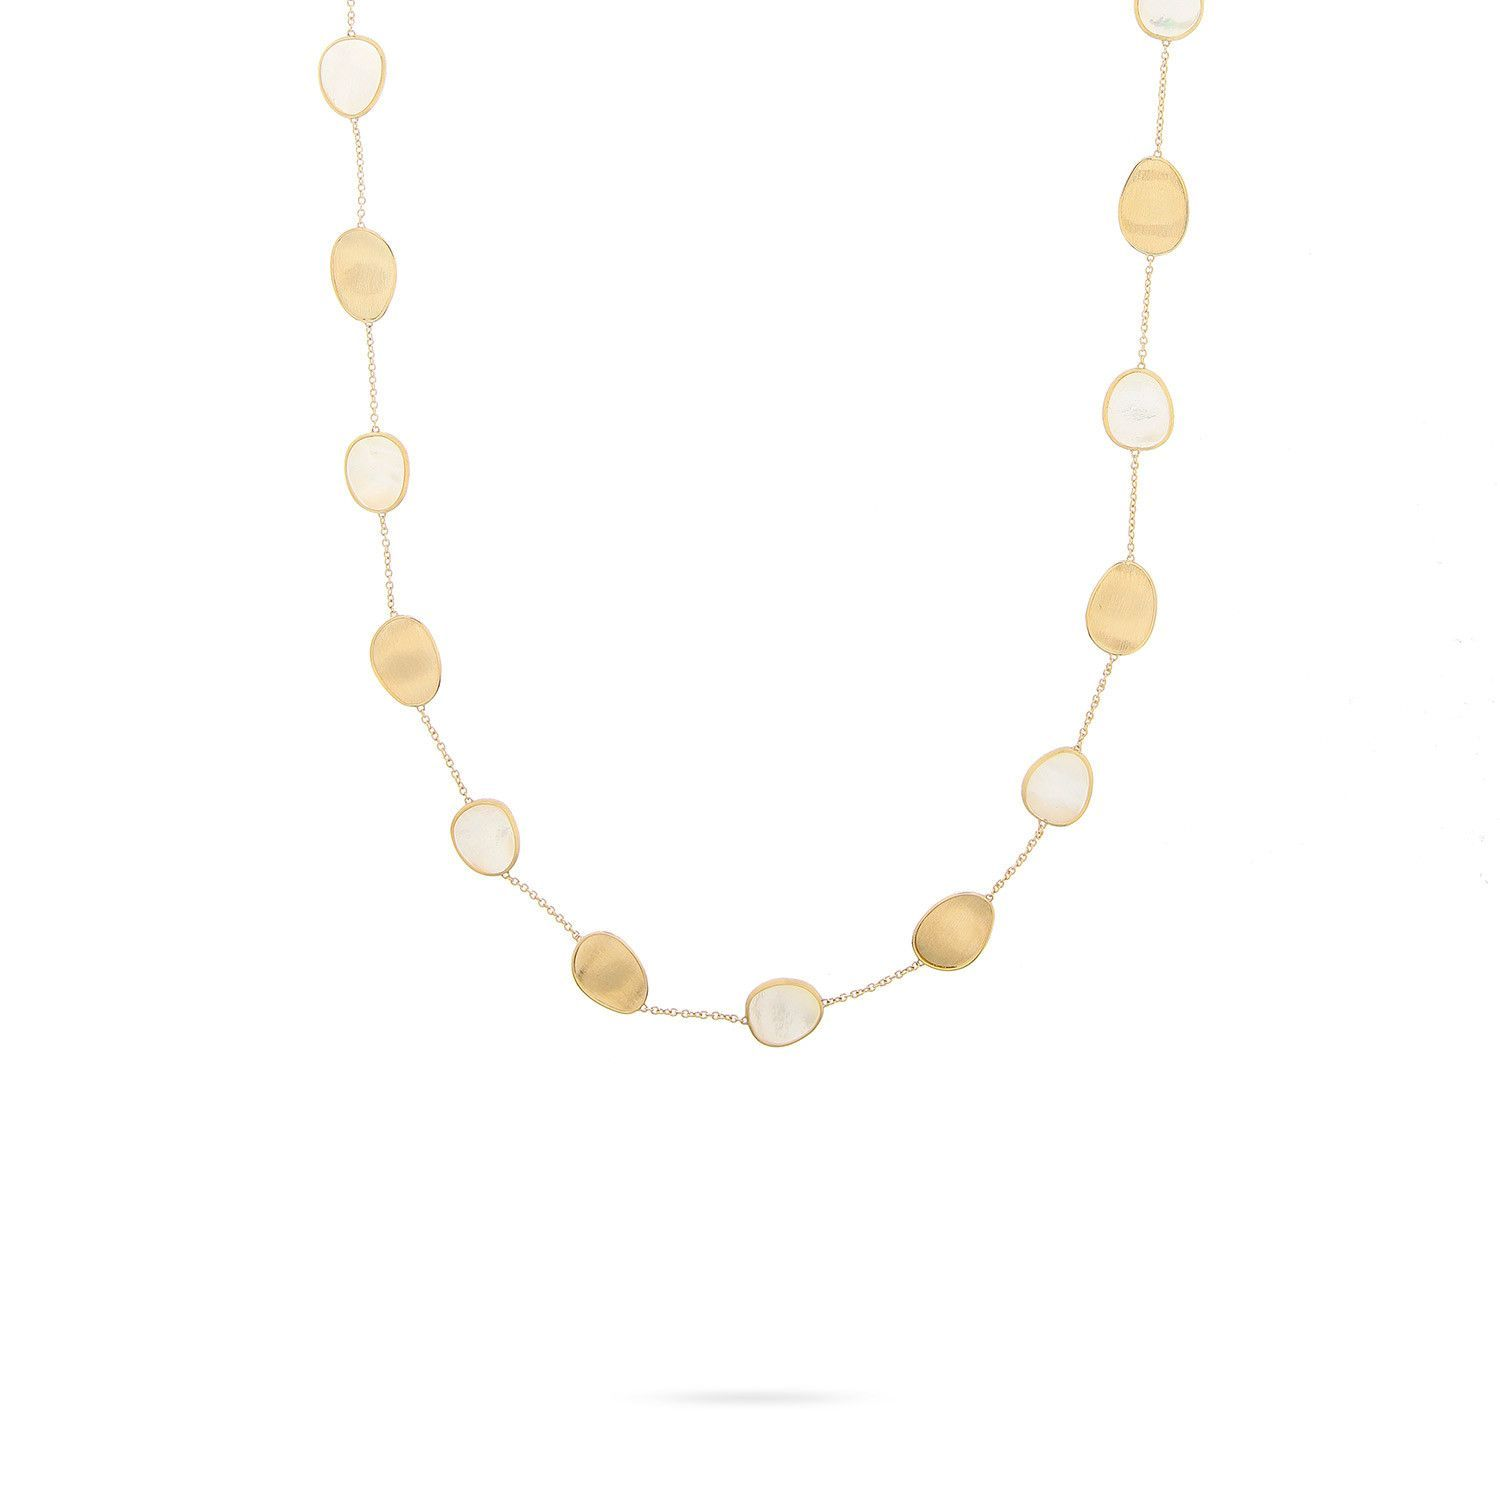 NEW - Lunaria Gold & White Mother of Pearl Short Necklace